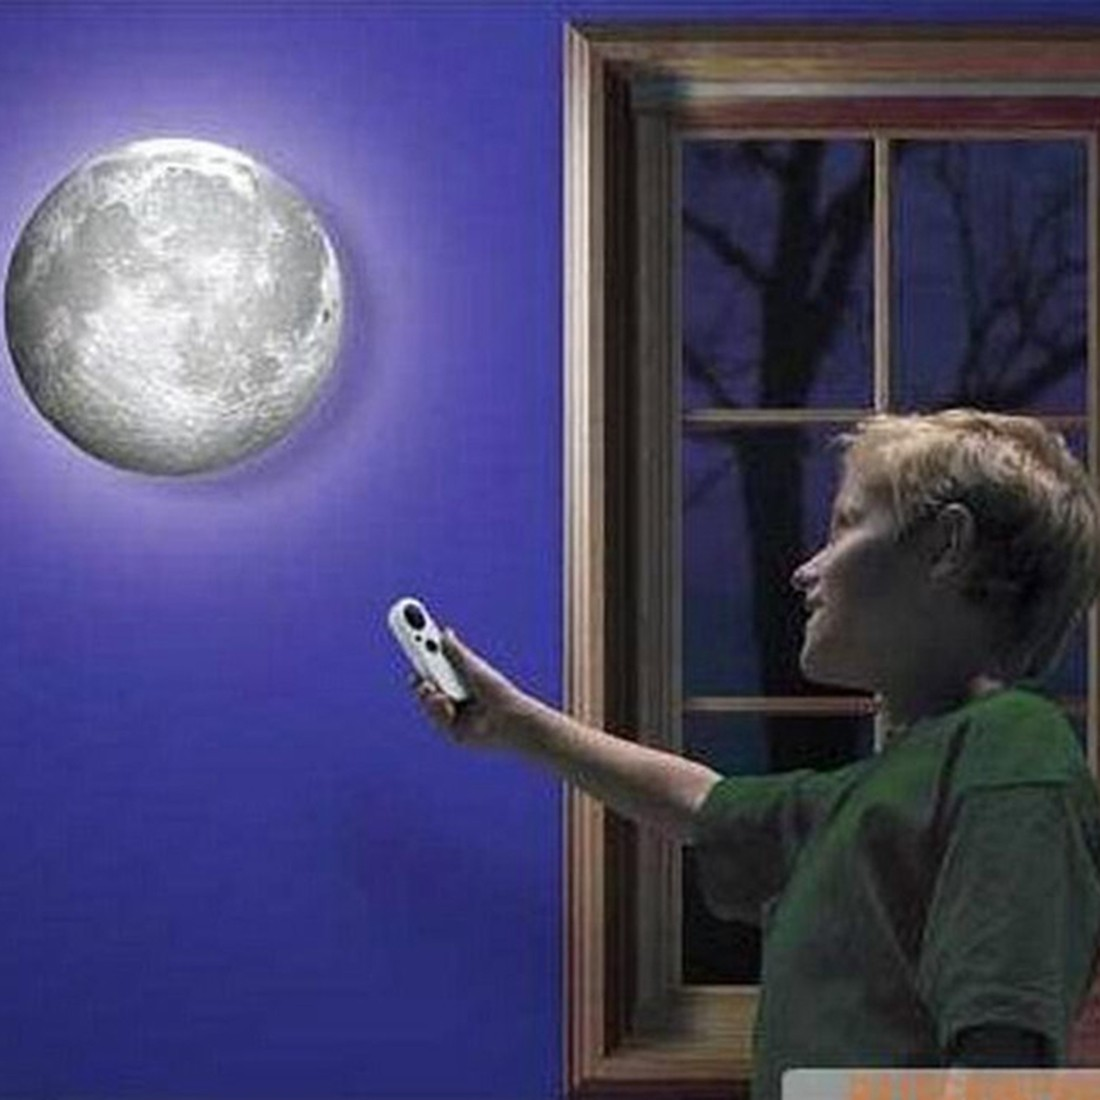 Indoor 6 Kinds Phase of LED Wall Moon Lamp With Remote Control Healing Moon Wall Ceiling Lamp Wall Hanging Lamp for Kids indoor 6 kinds phase of led wall moon lamp with remote control healing moon wall ceiling lamp wall hanging lamp for kids